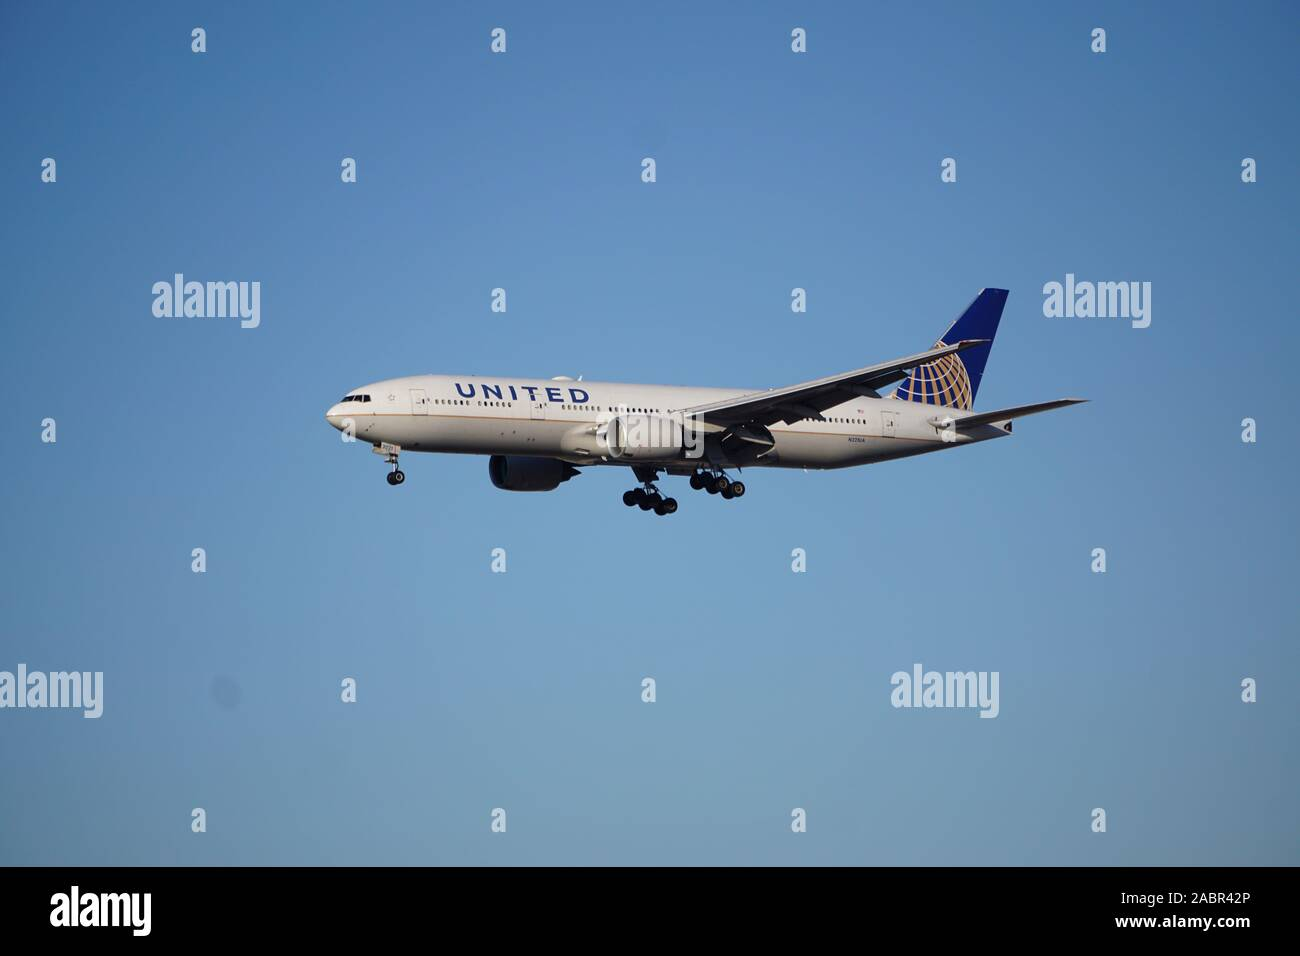 United Airlines Boeing 777 On Approach To Chicago S O Hare International Airport The Flight Originated In Frankfurt Germany Stock Photo Alamy